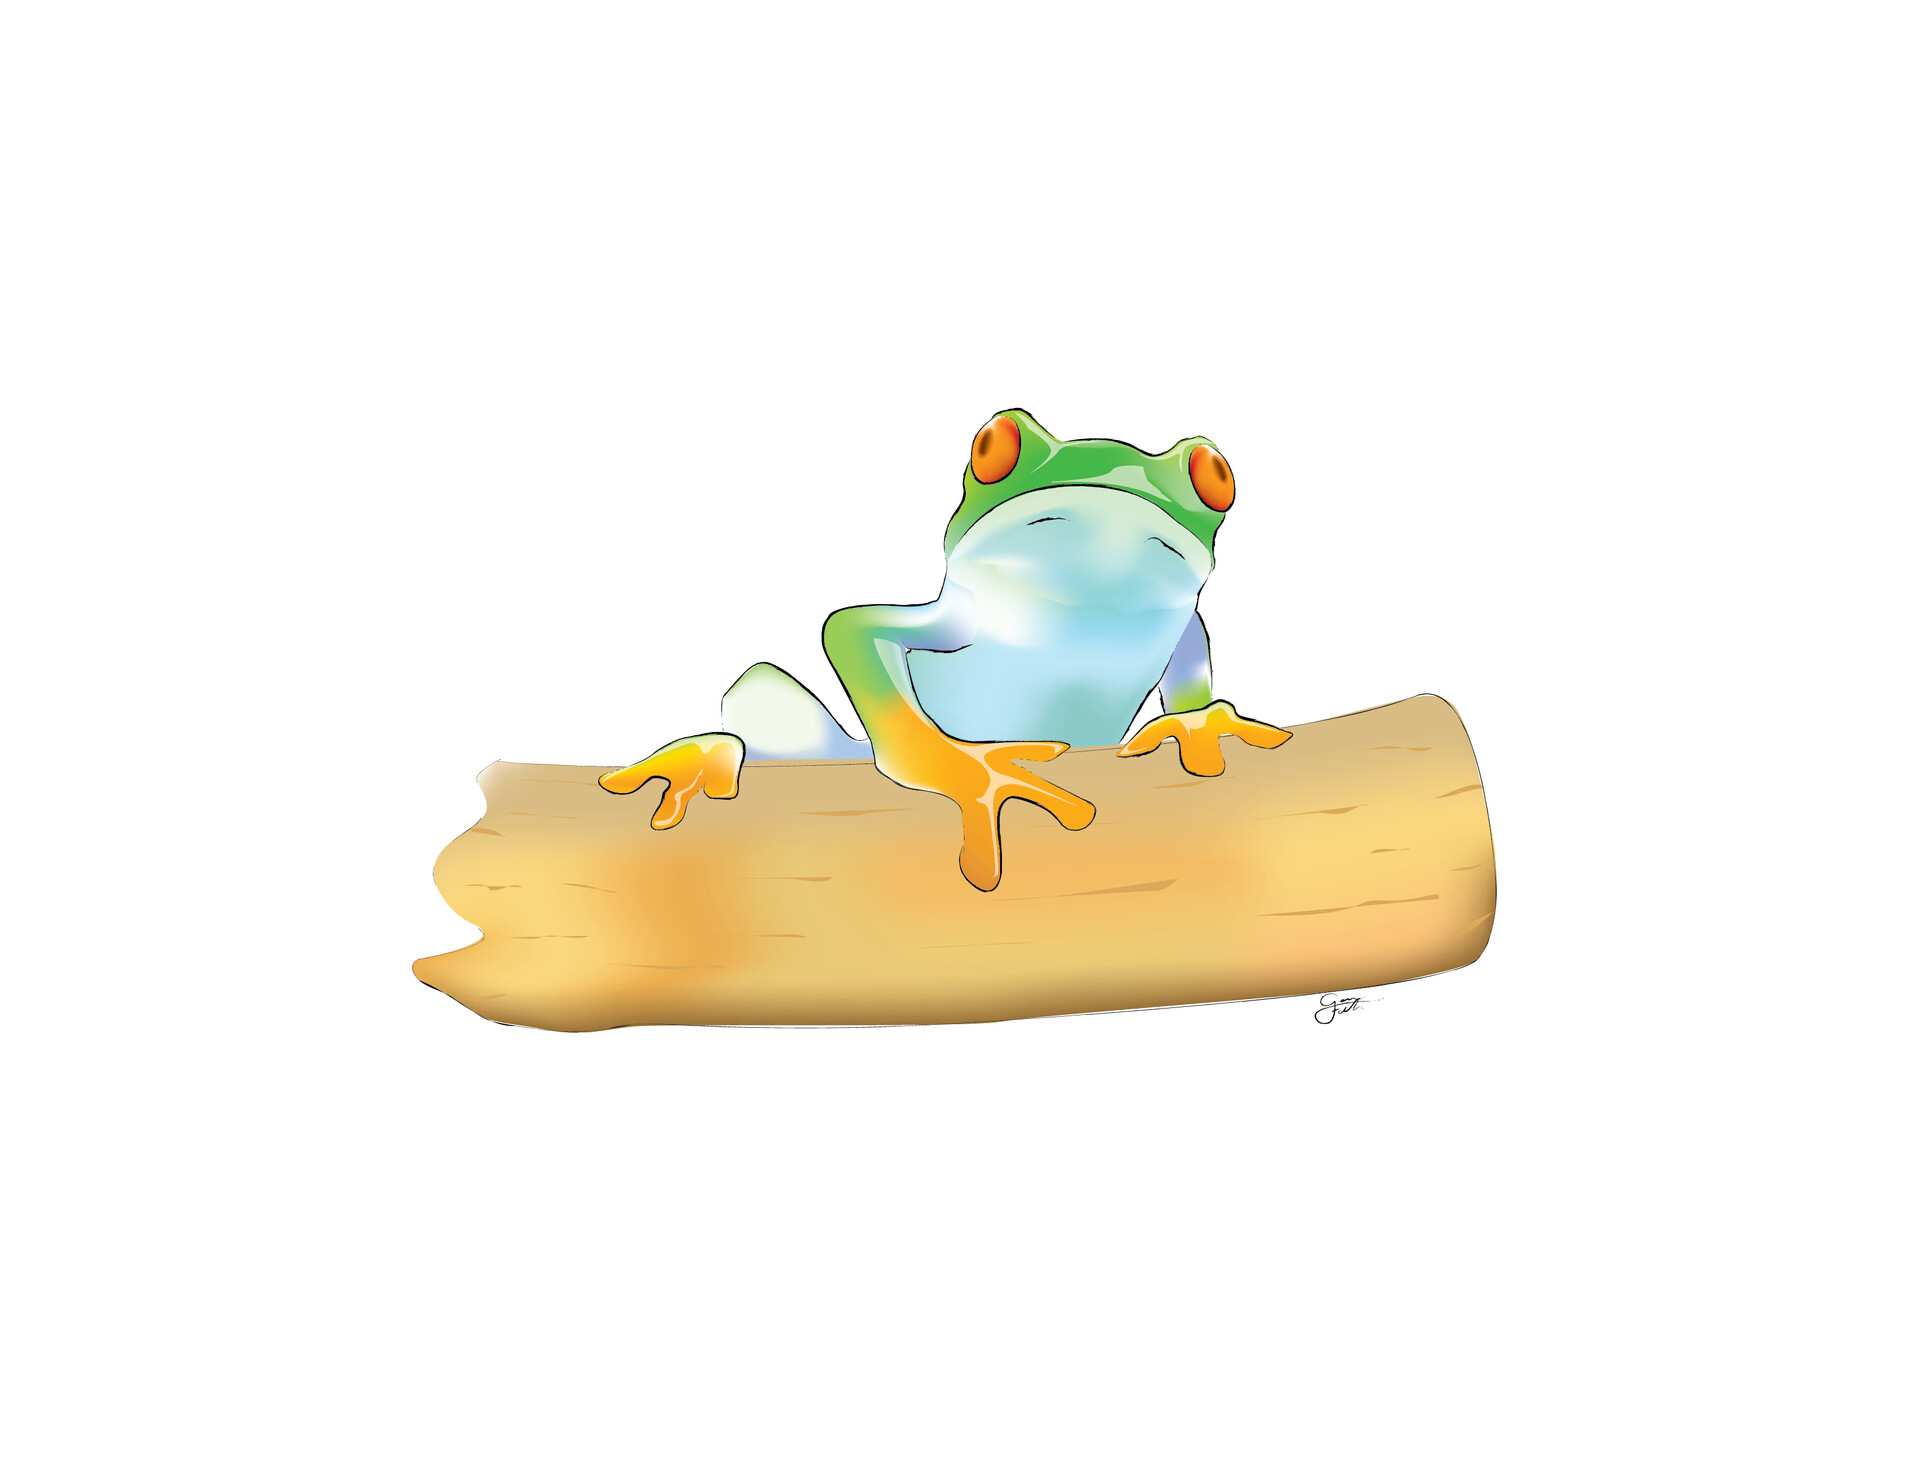 Old Work - quickie frog illustration in Adobe Illustrator, using gradient meshes for colour blending.